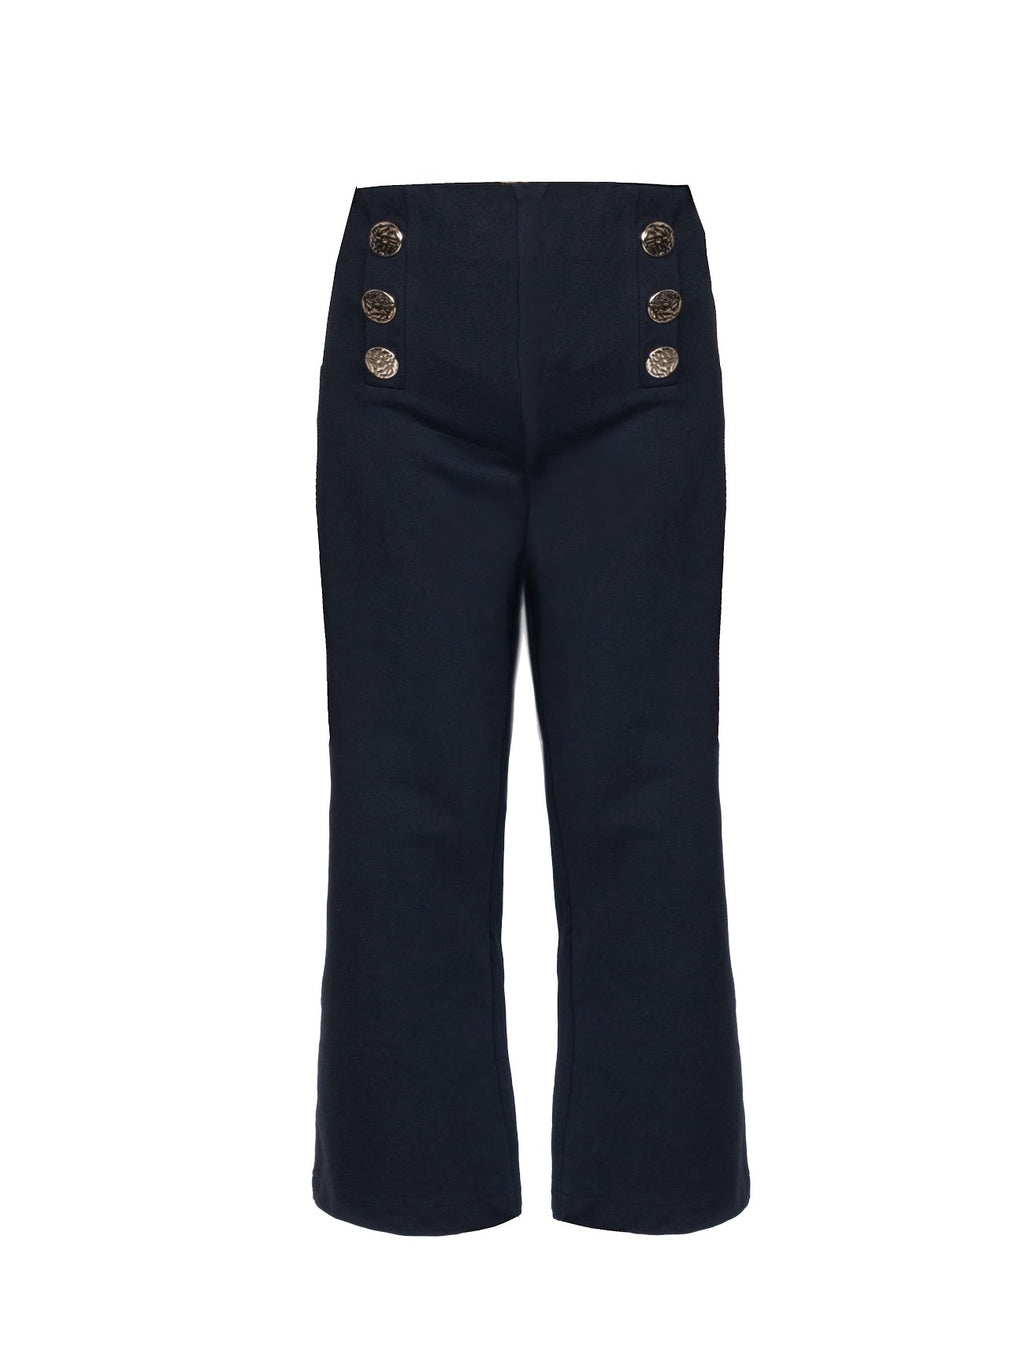 WIDE LEGGED PANTS WITH GOLD BUTTONS (4684383846484)